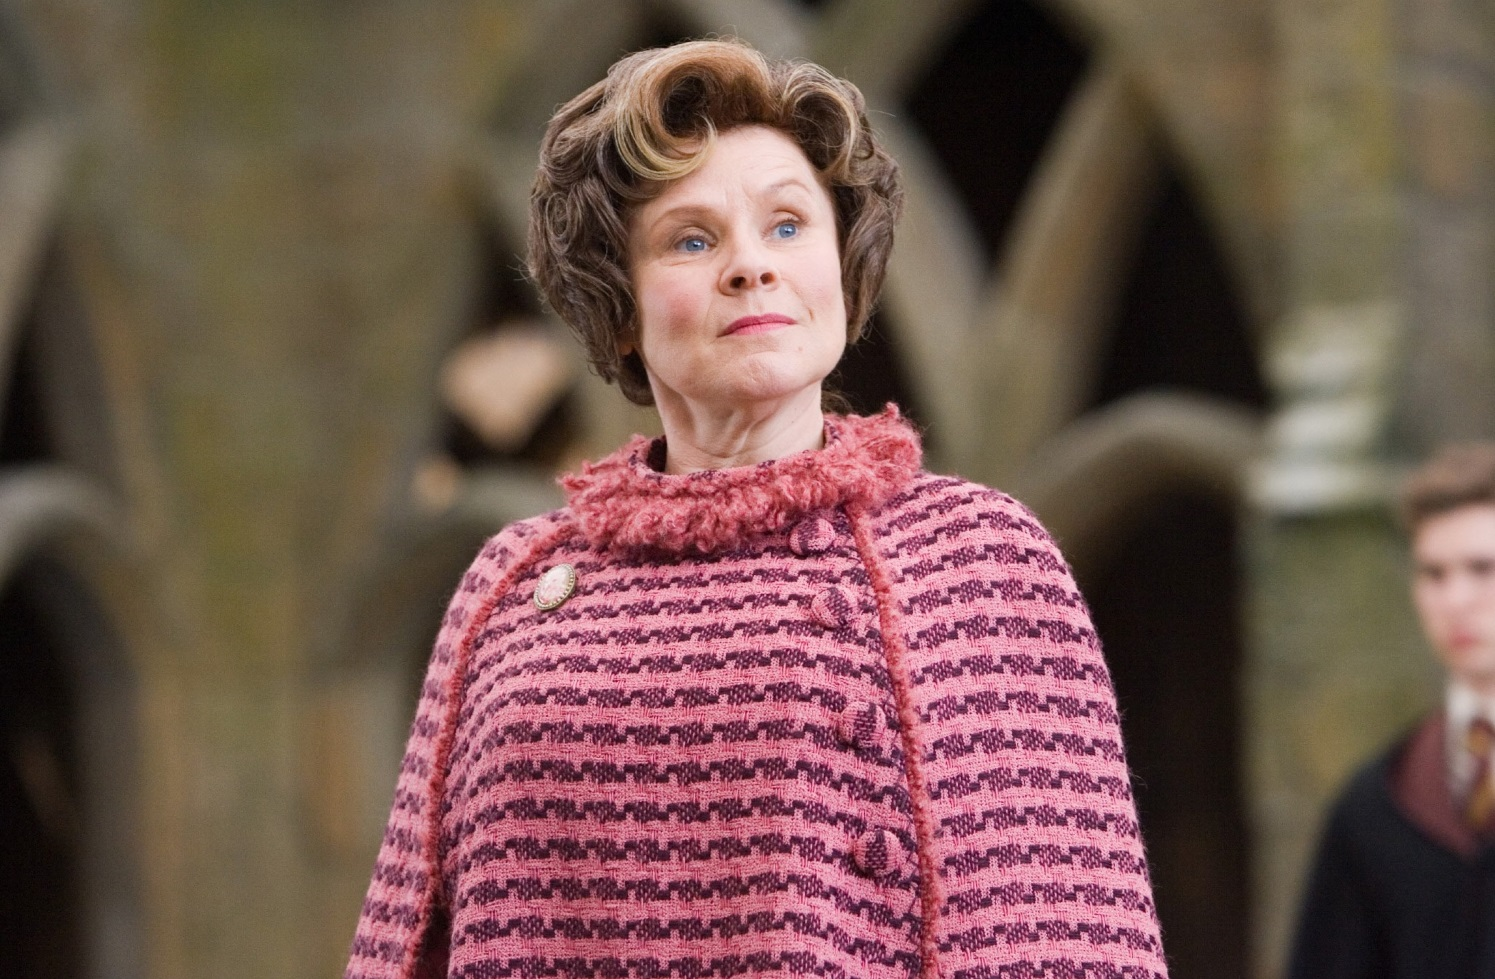 Imelda Staunton as Dolores Umbridge in Harry Potter and the Order of the Phoenix (2007)